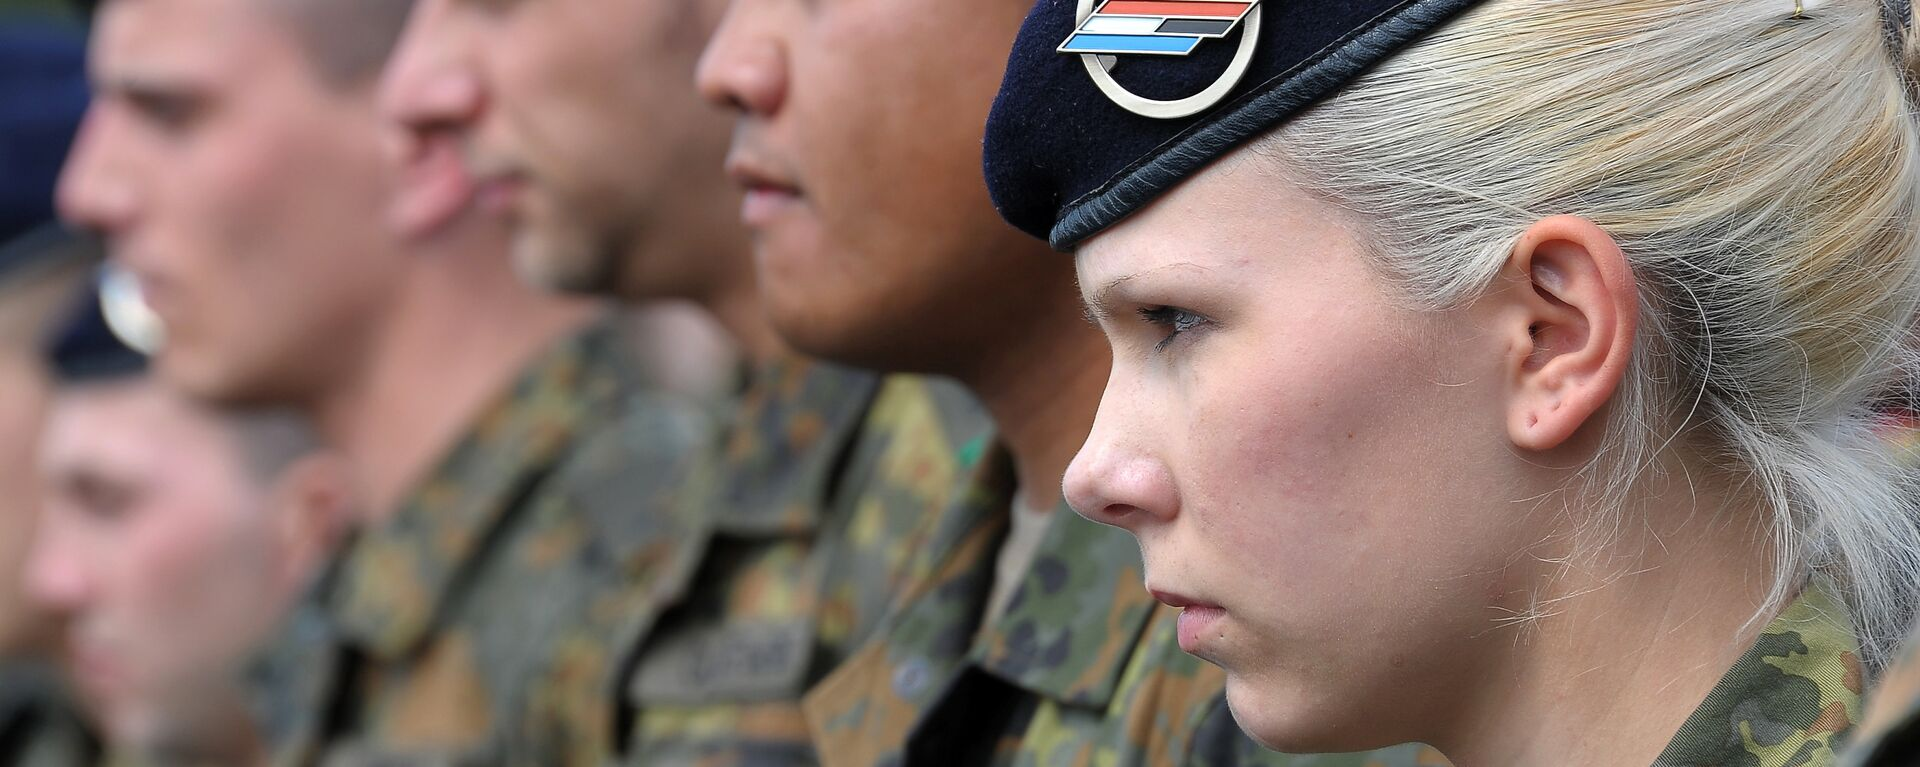 German soldiers of the 291st Jagerbataillon take part in a military ceremony on July 5, 2012 in Illkirch-Graffenstaden, eastern France. The 600 soldiers of the 291st Jägerbataillon, the first German regiment stationed in France since 1945 and who will parade down the Champs-Elysees avenue on July 14, represent a powerful symbol of reconciliation between the two countries - Sputnik Mundo, 1920, 09.09.2021